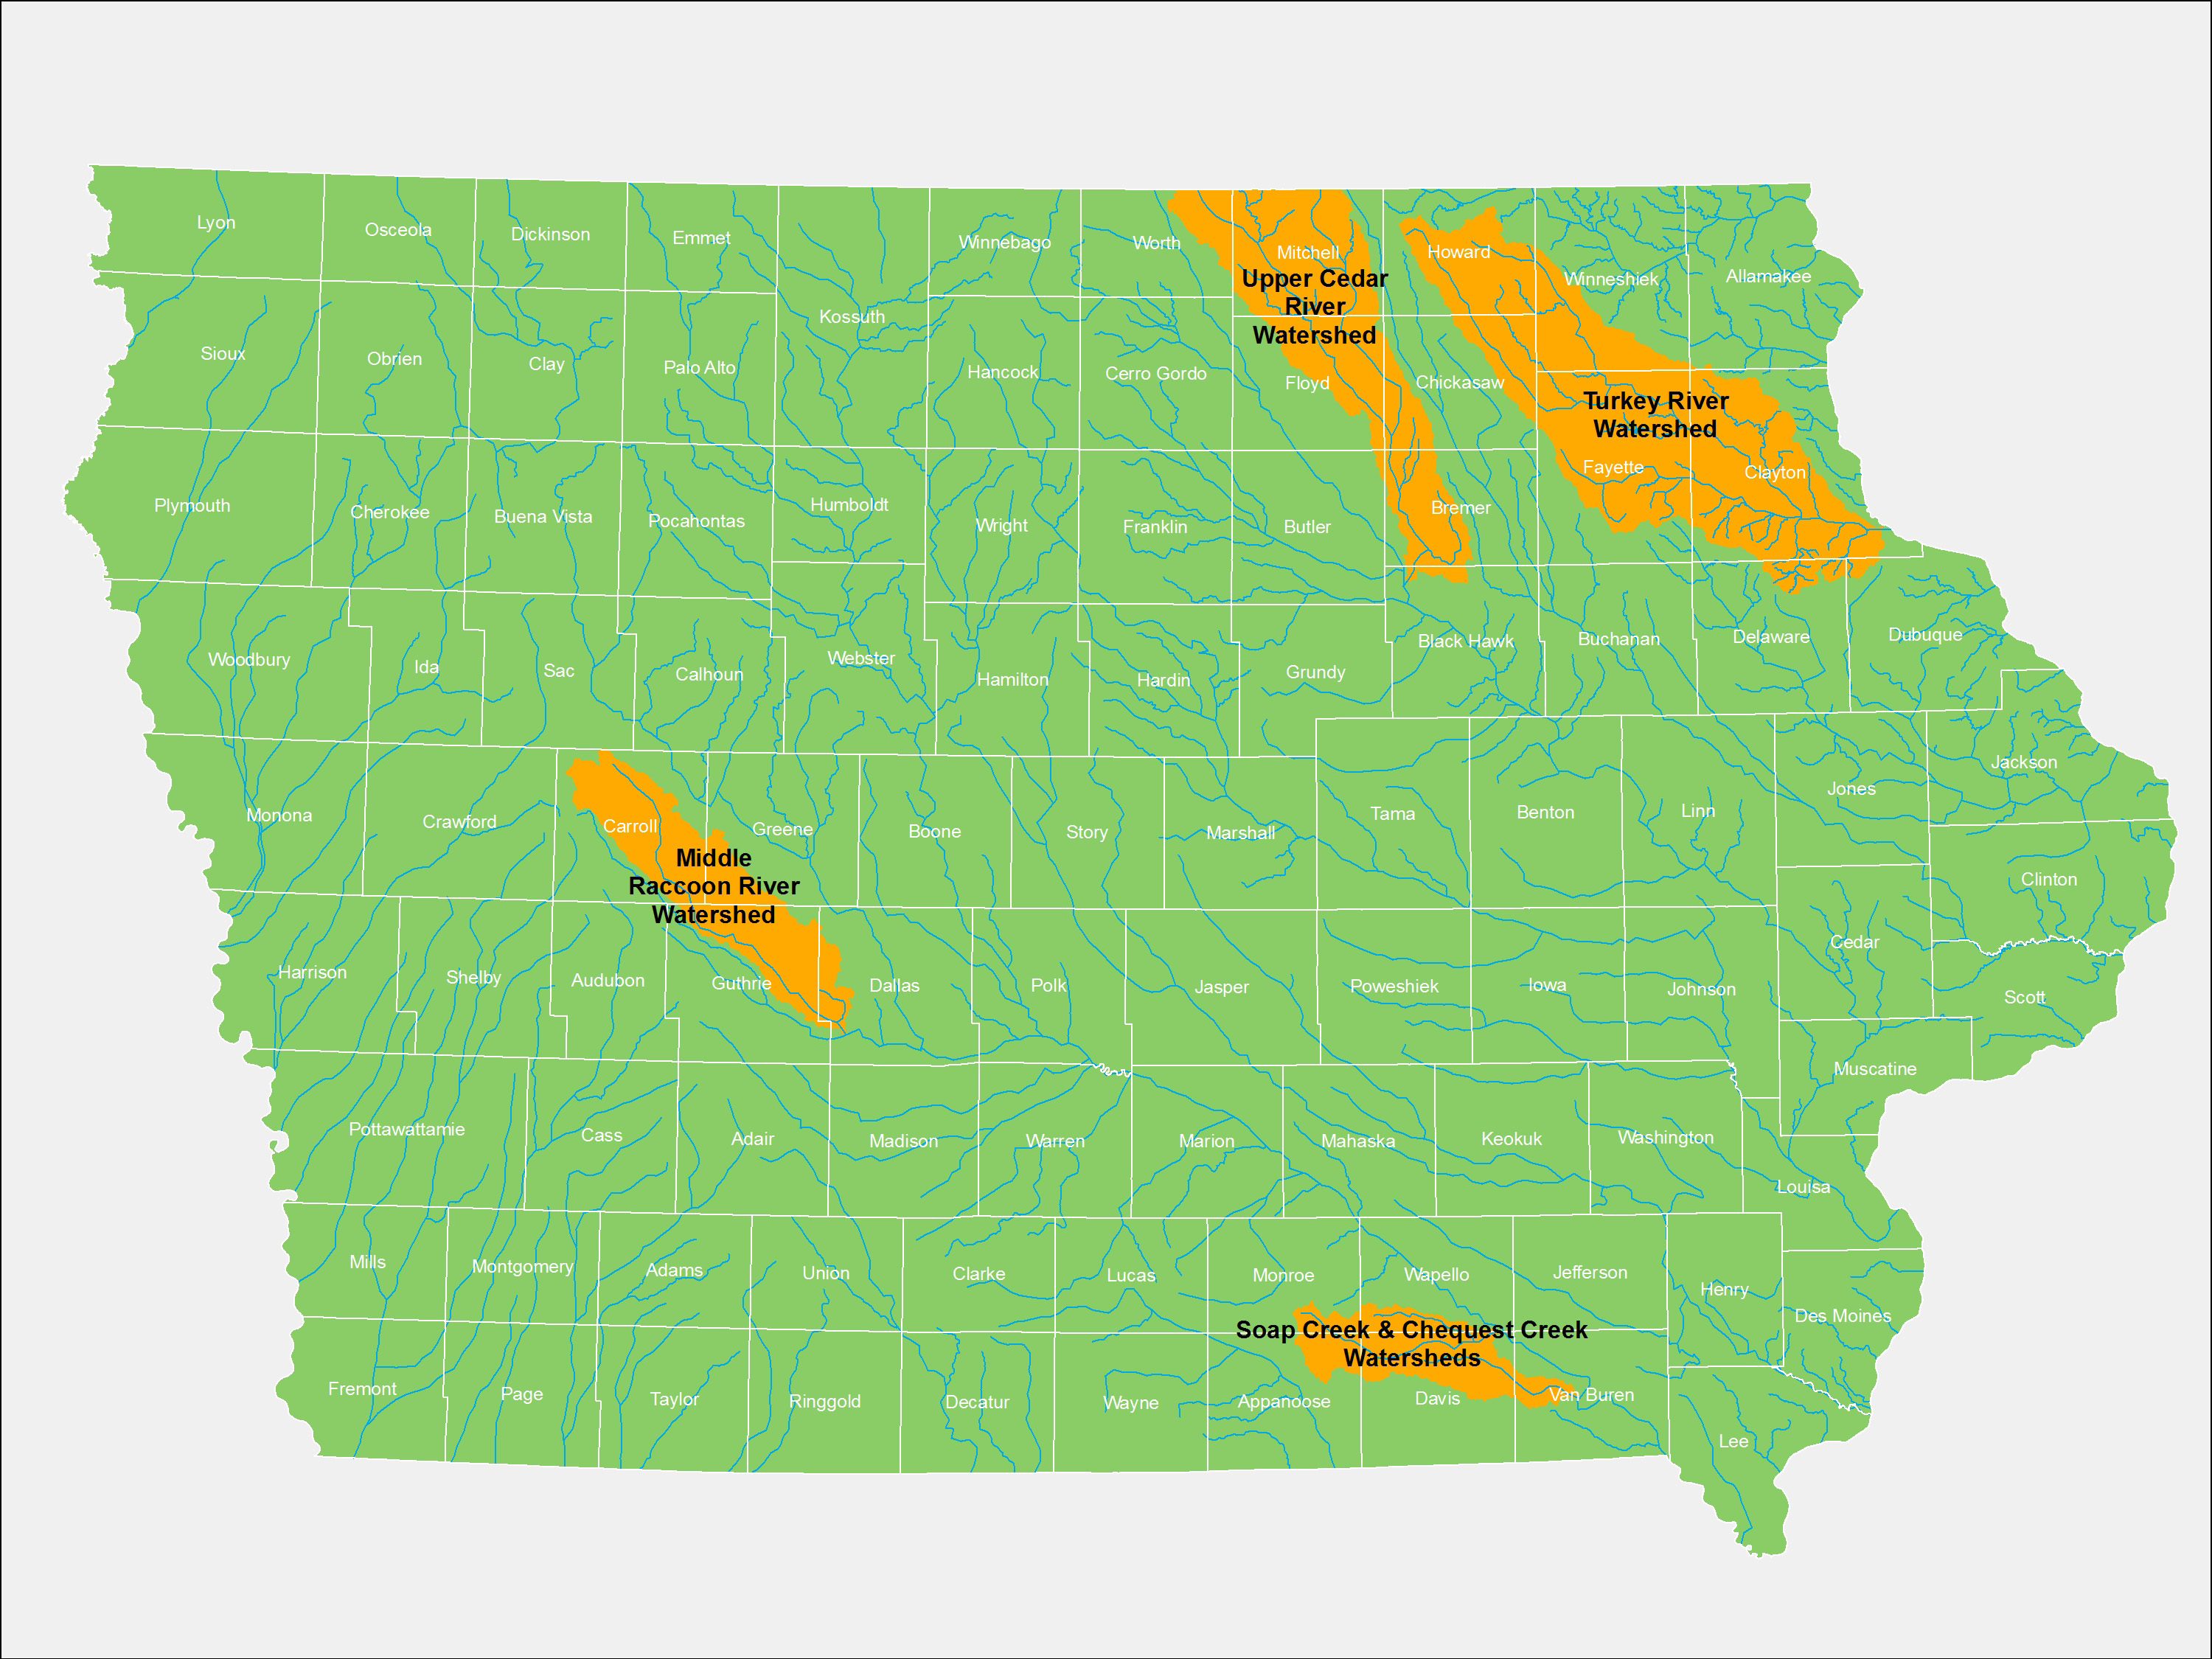 Four watersheds were chosen for the Iowa Watersheds Project.